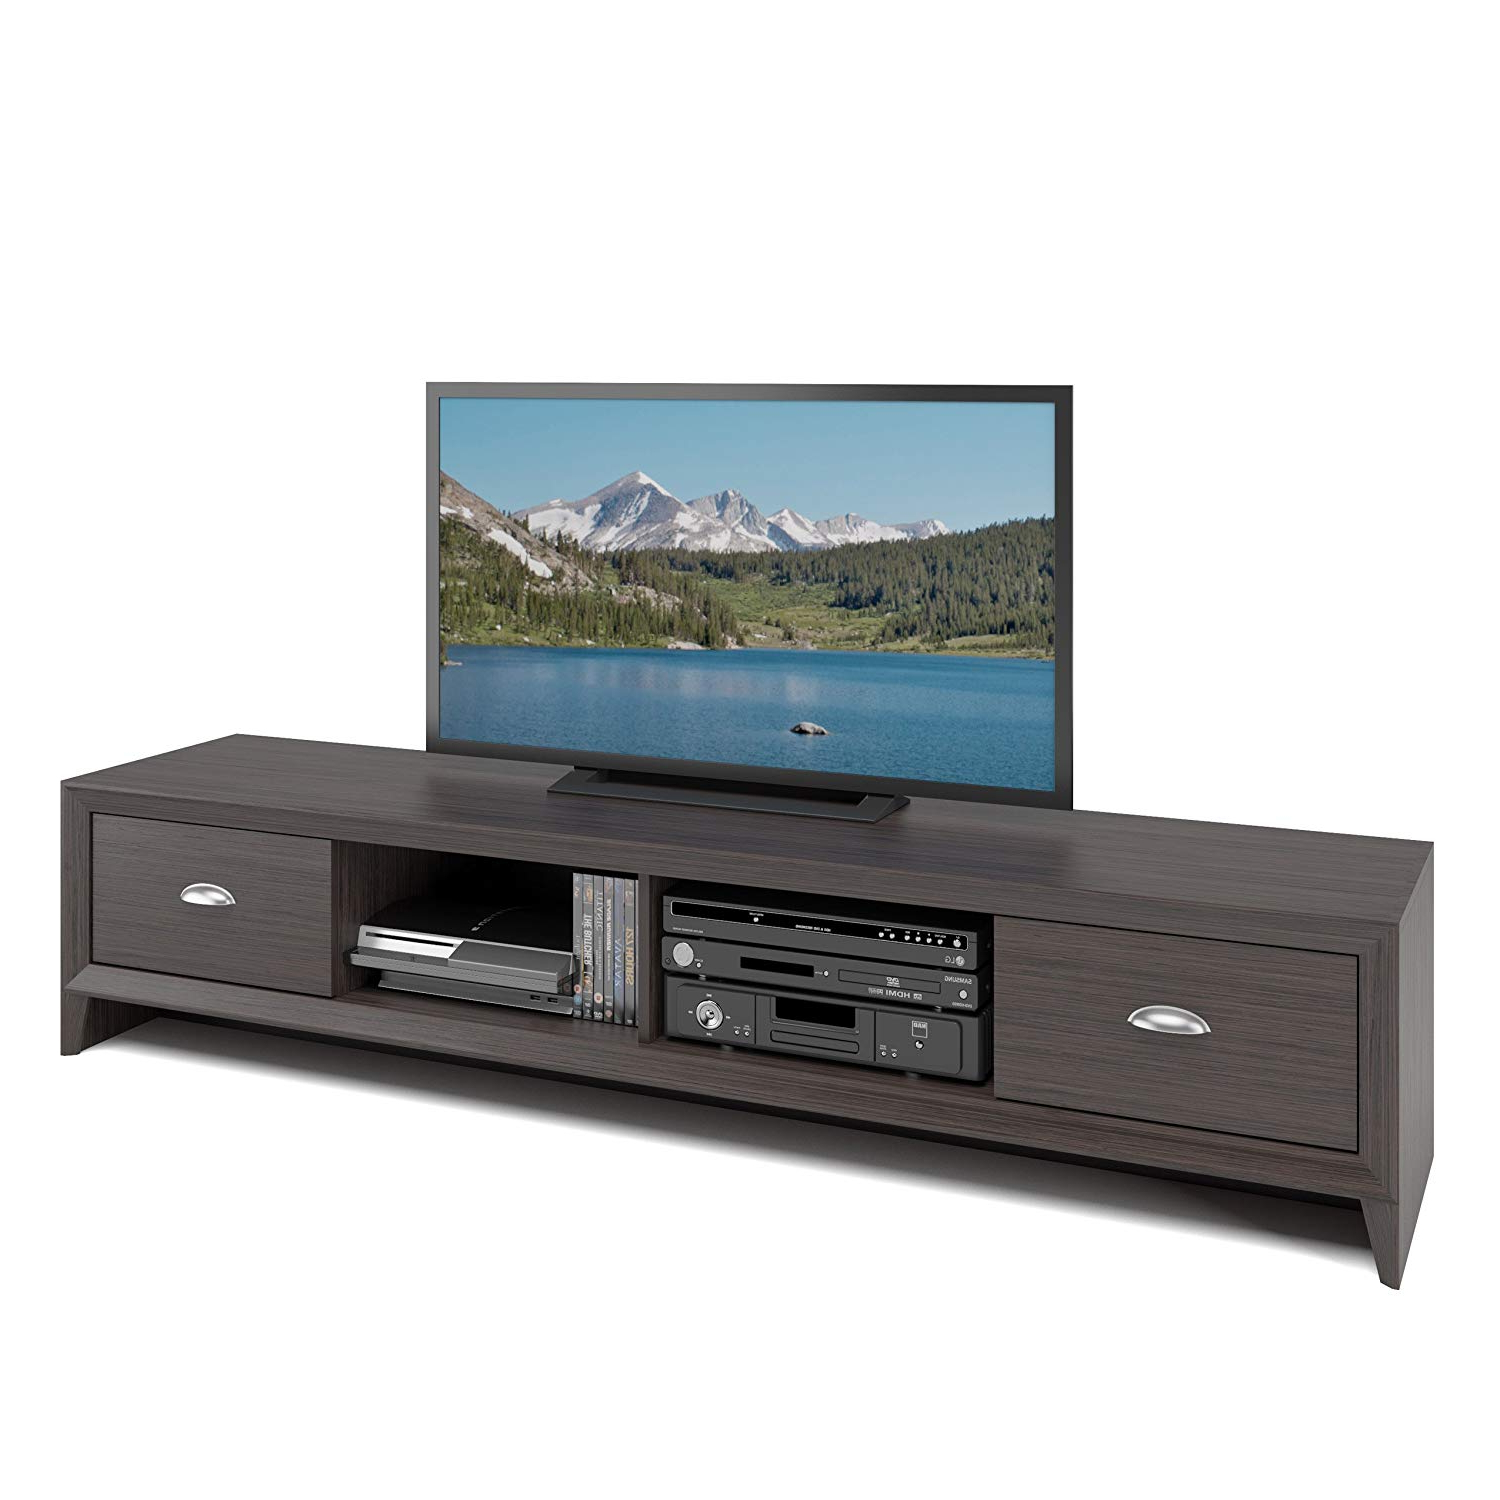 80 Inch Tv Stands Intended For Popular Amazon: Corliving Tlk 872 B Lakewood Tv Bench, Modern Wenge (Gallery 2 of 20)